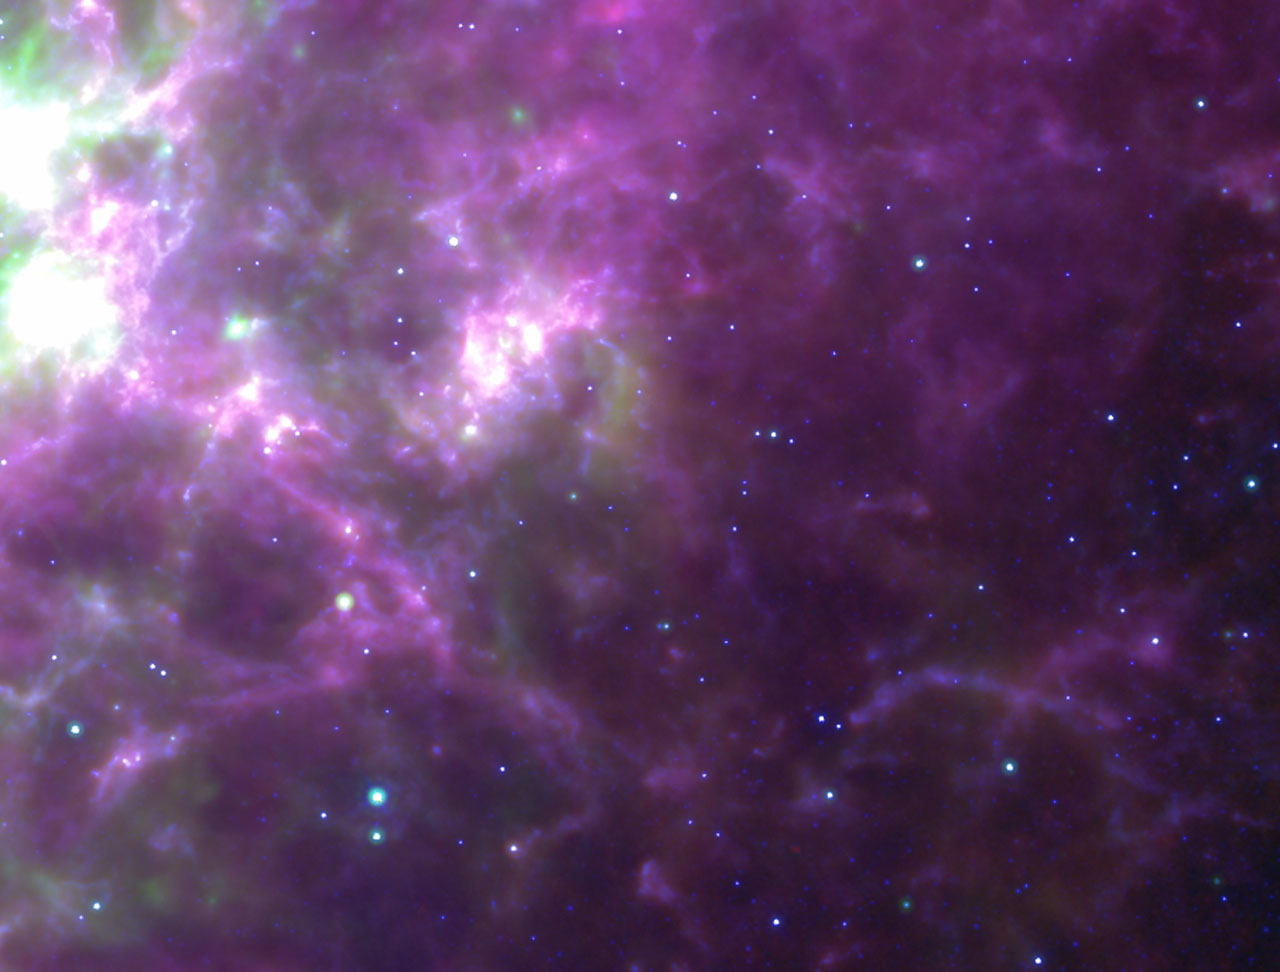 Spitzer/IRAC/MIPS and Herschel/SPIRE composites of SN1987A remnant in the Large Magellanic Cloud (Courtesy HERITAGE)